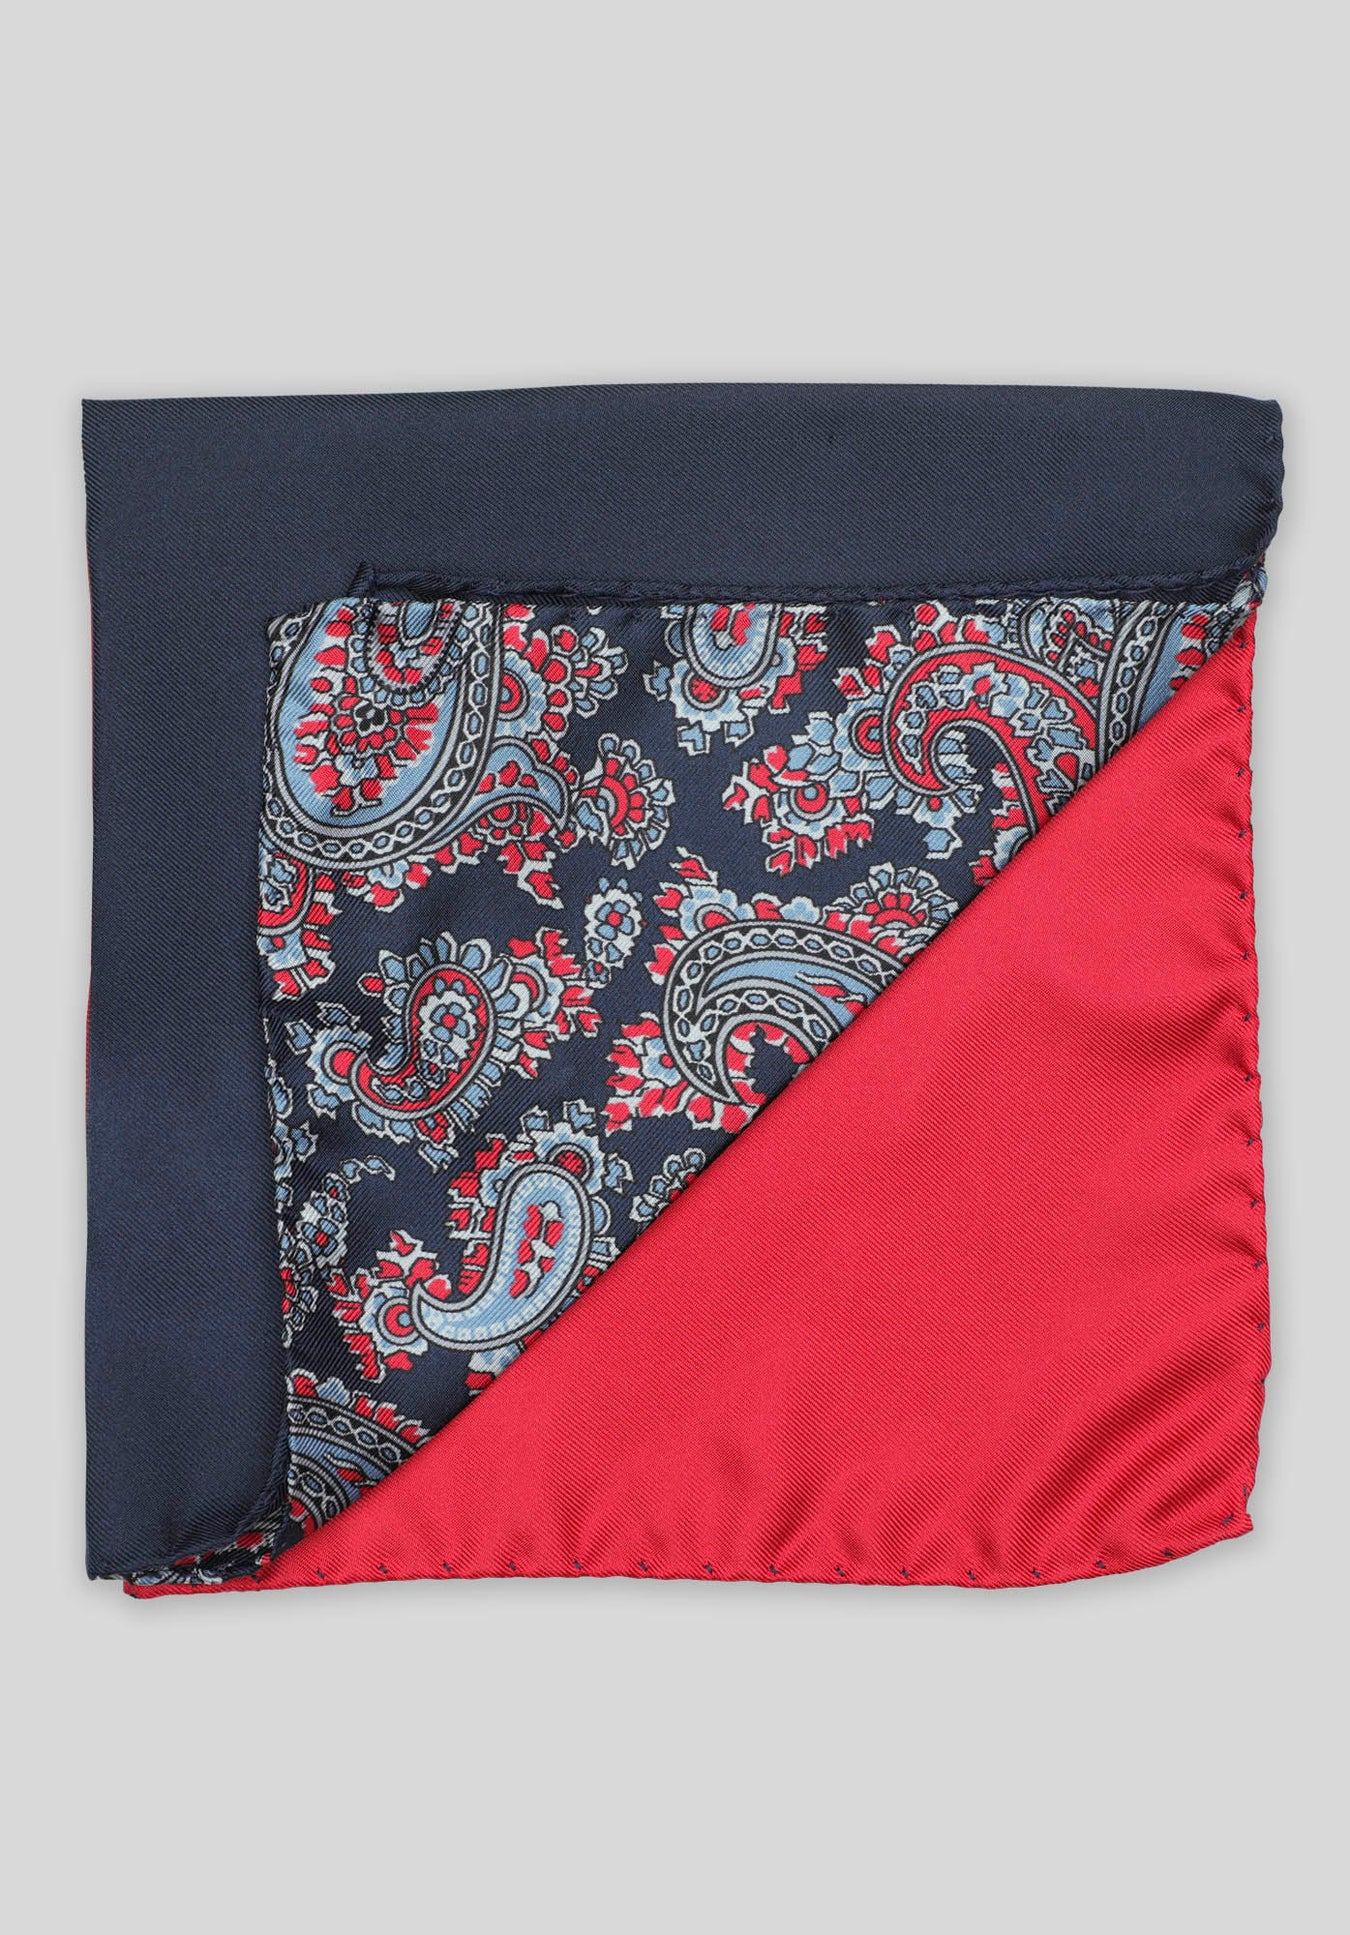 4-WAY PAISLEY POCHETTE - Red